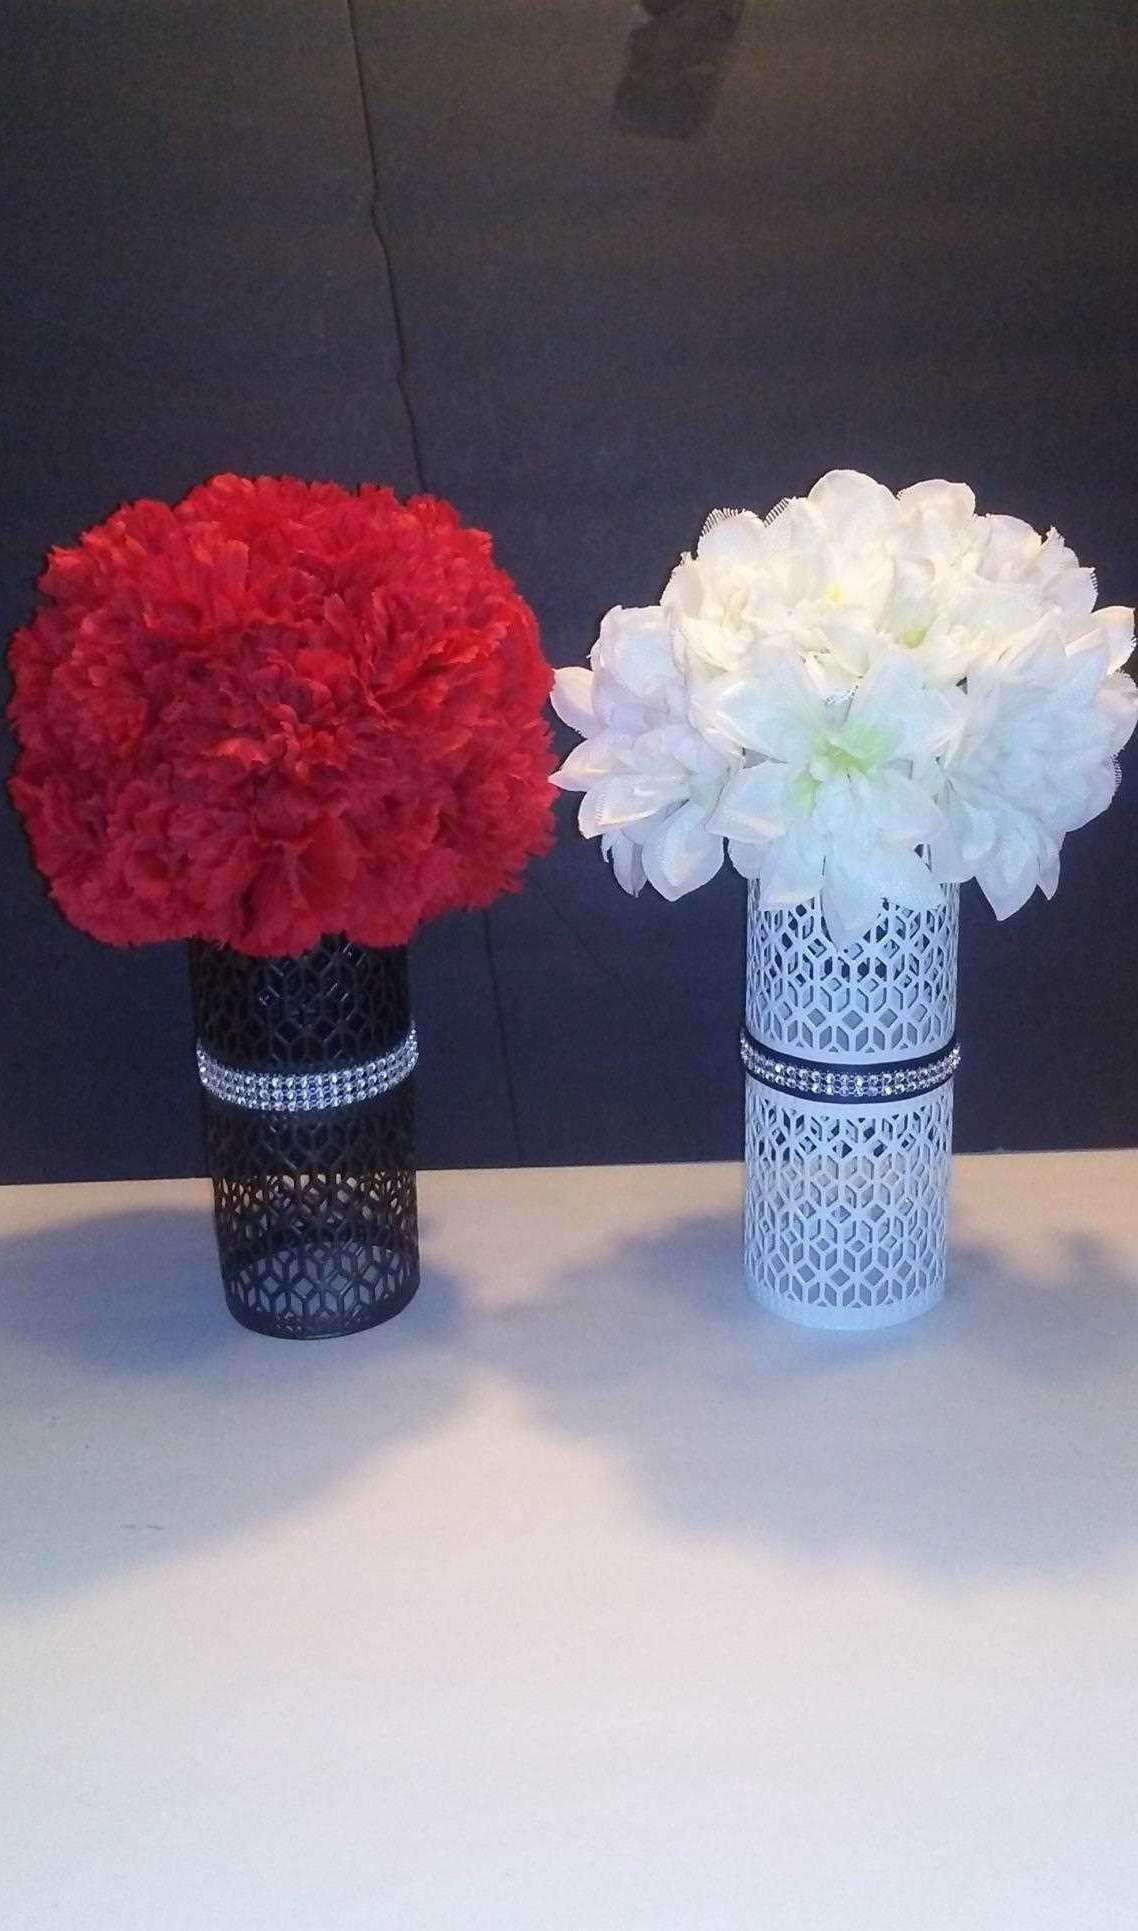 vase table centerpiece ideas of red table vases photograph dollar tree wedding decorations awesome h pertaining to red table vases photograph dollar tree wedding decorations awesome h vases dollar vase i 0d of